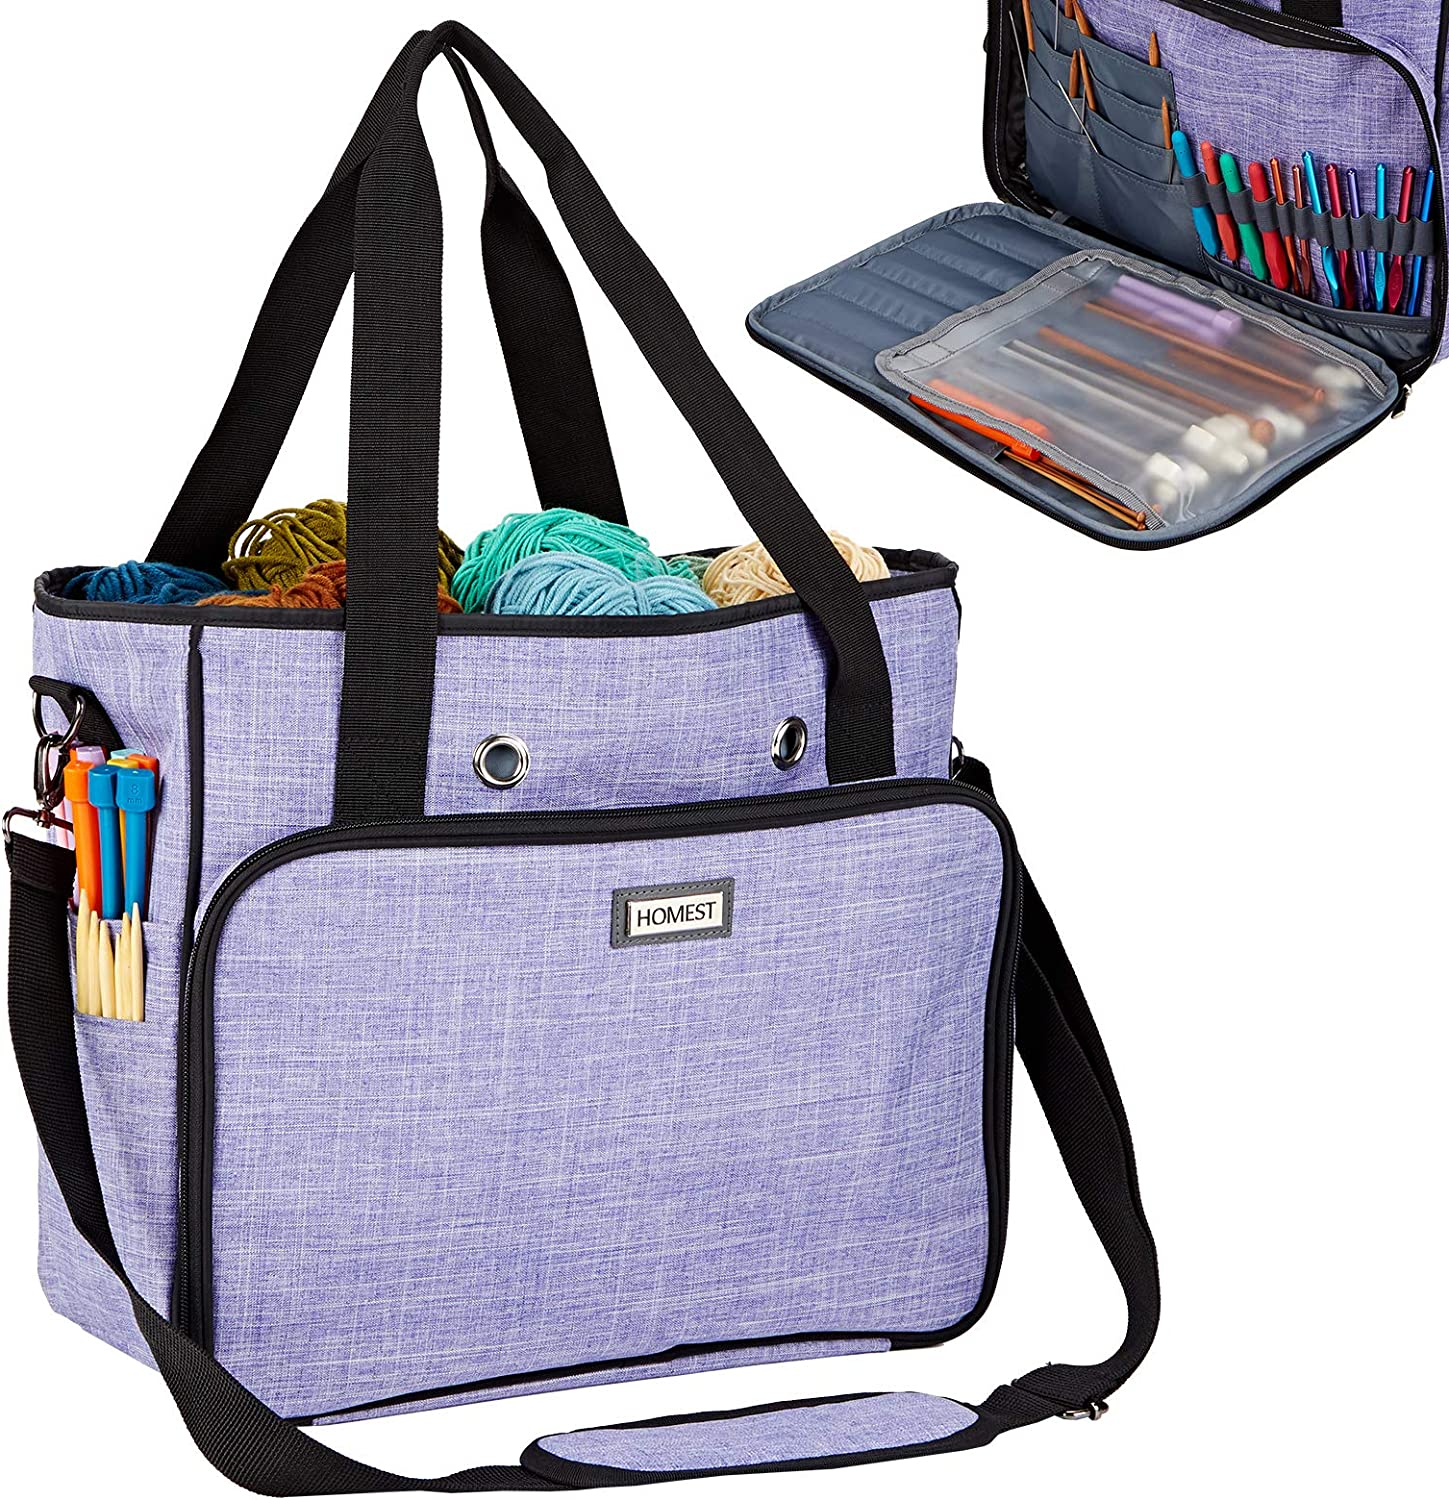 HOMEST Free Shipping Cheap Bargain Gift Large Yarn Storage for and Markers to Easy C Deluxe Stitch